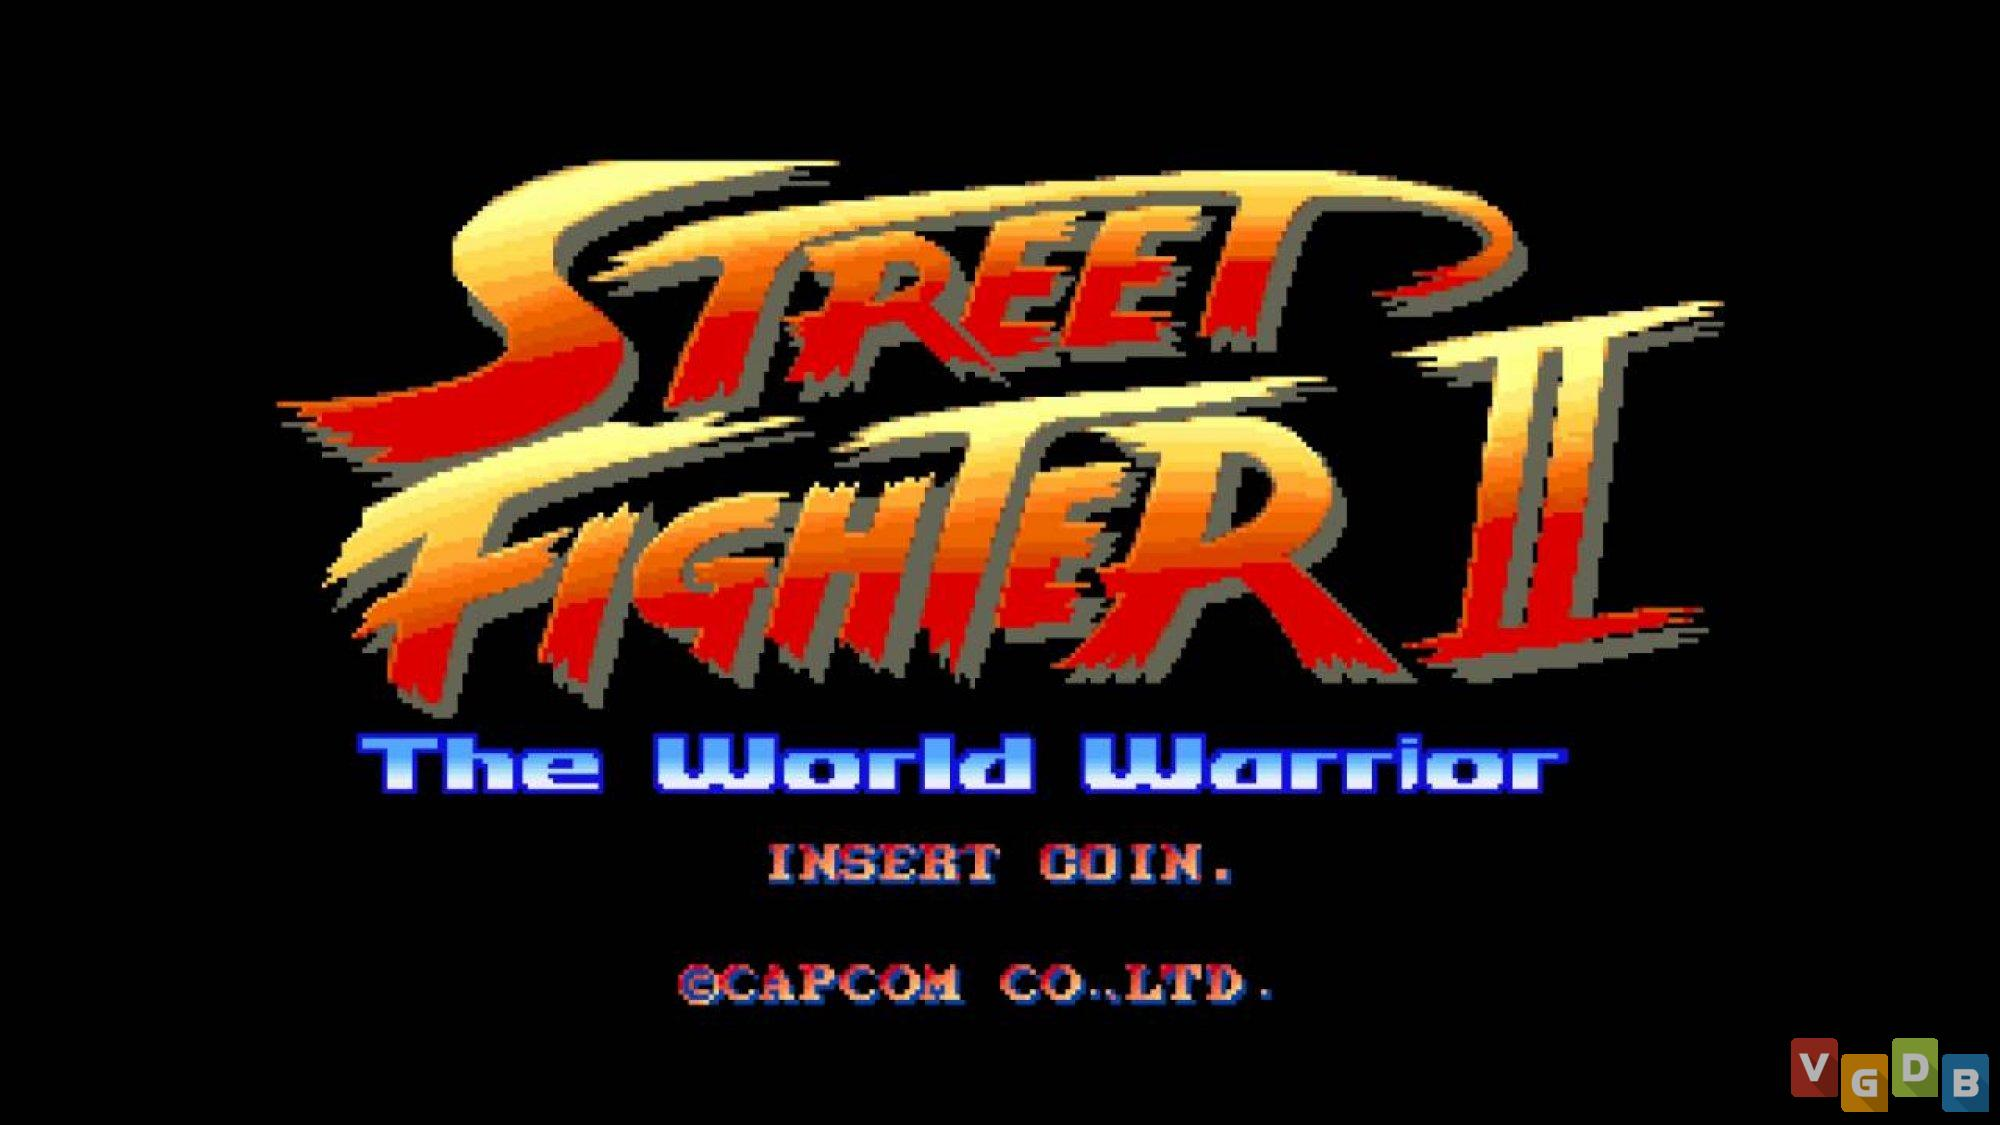 Street Fighter 2 : The World Warrior